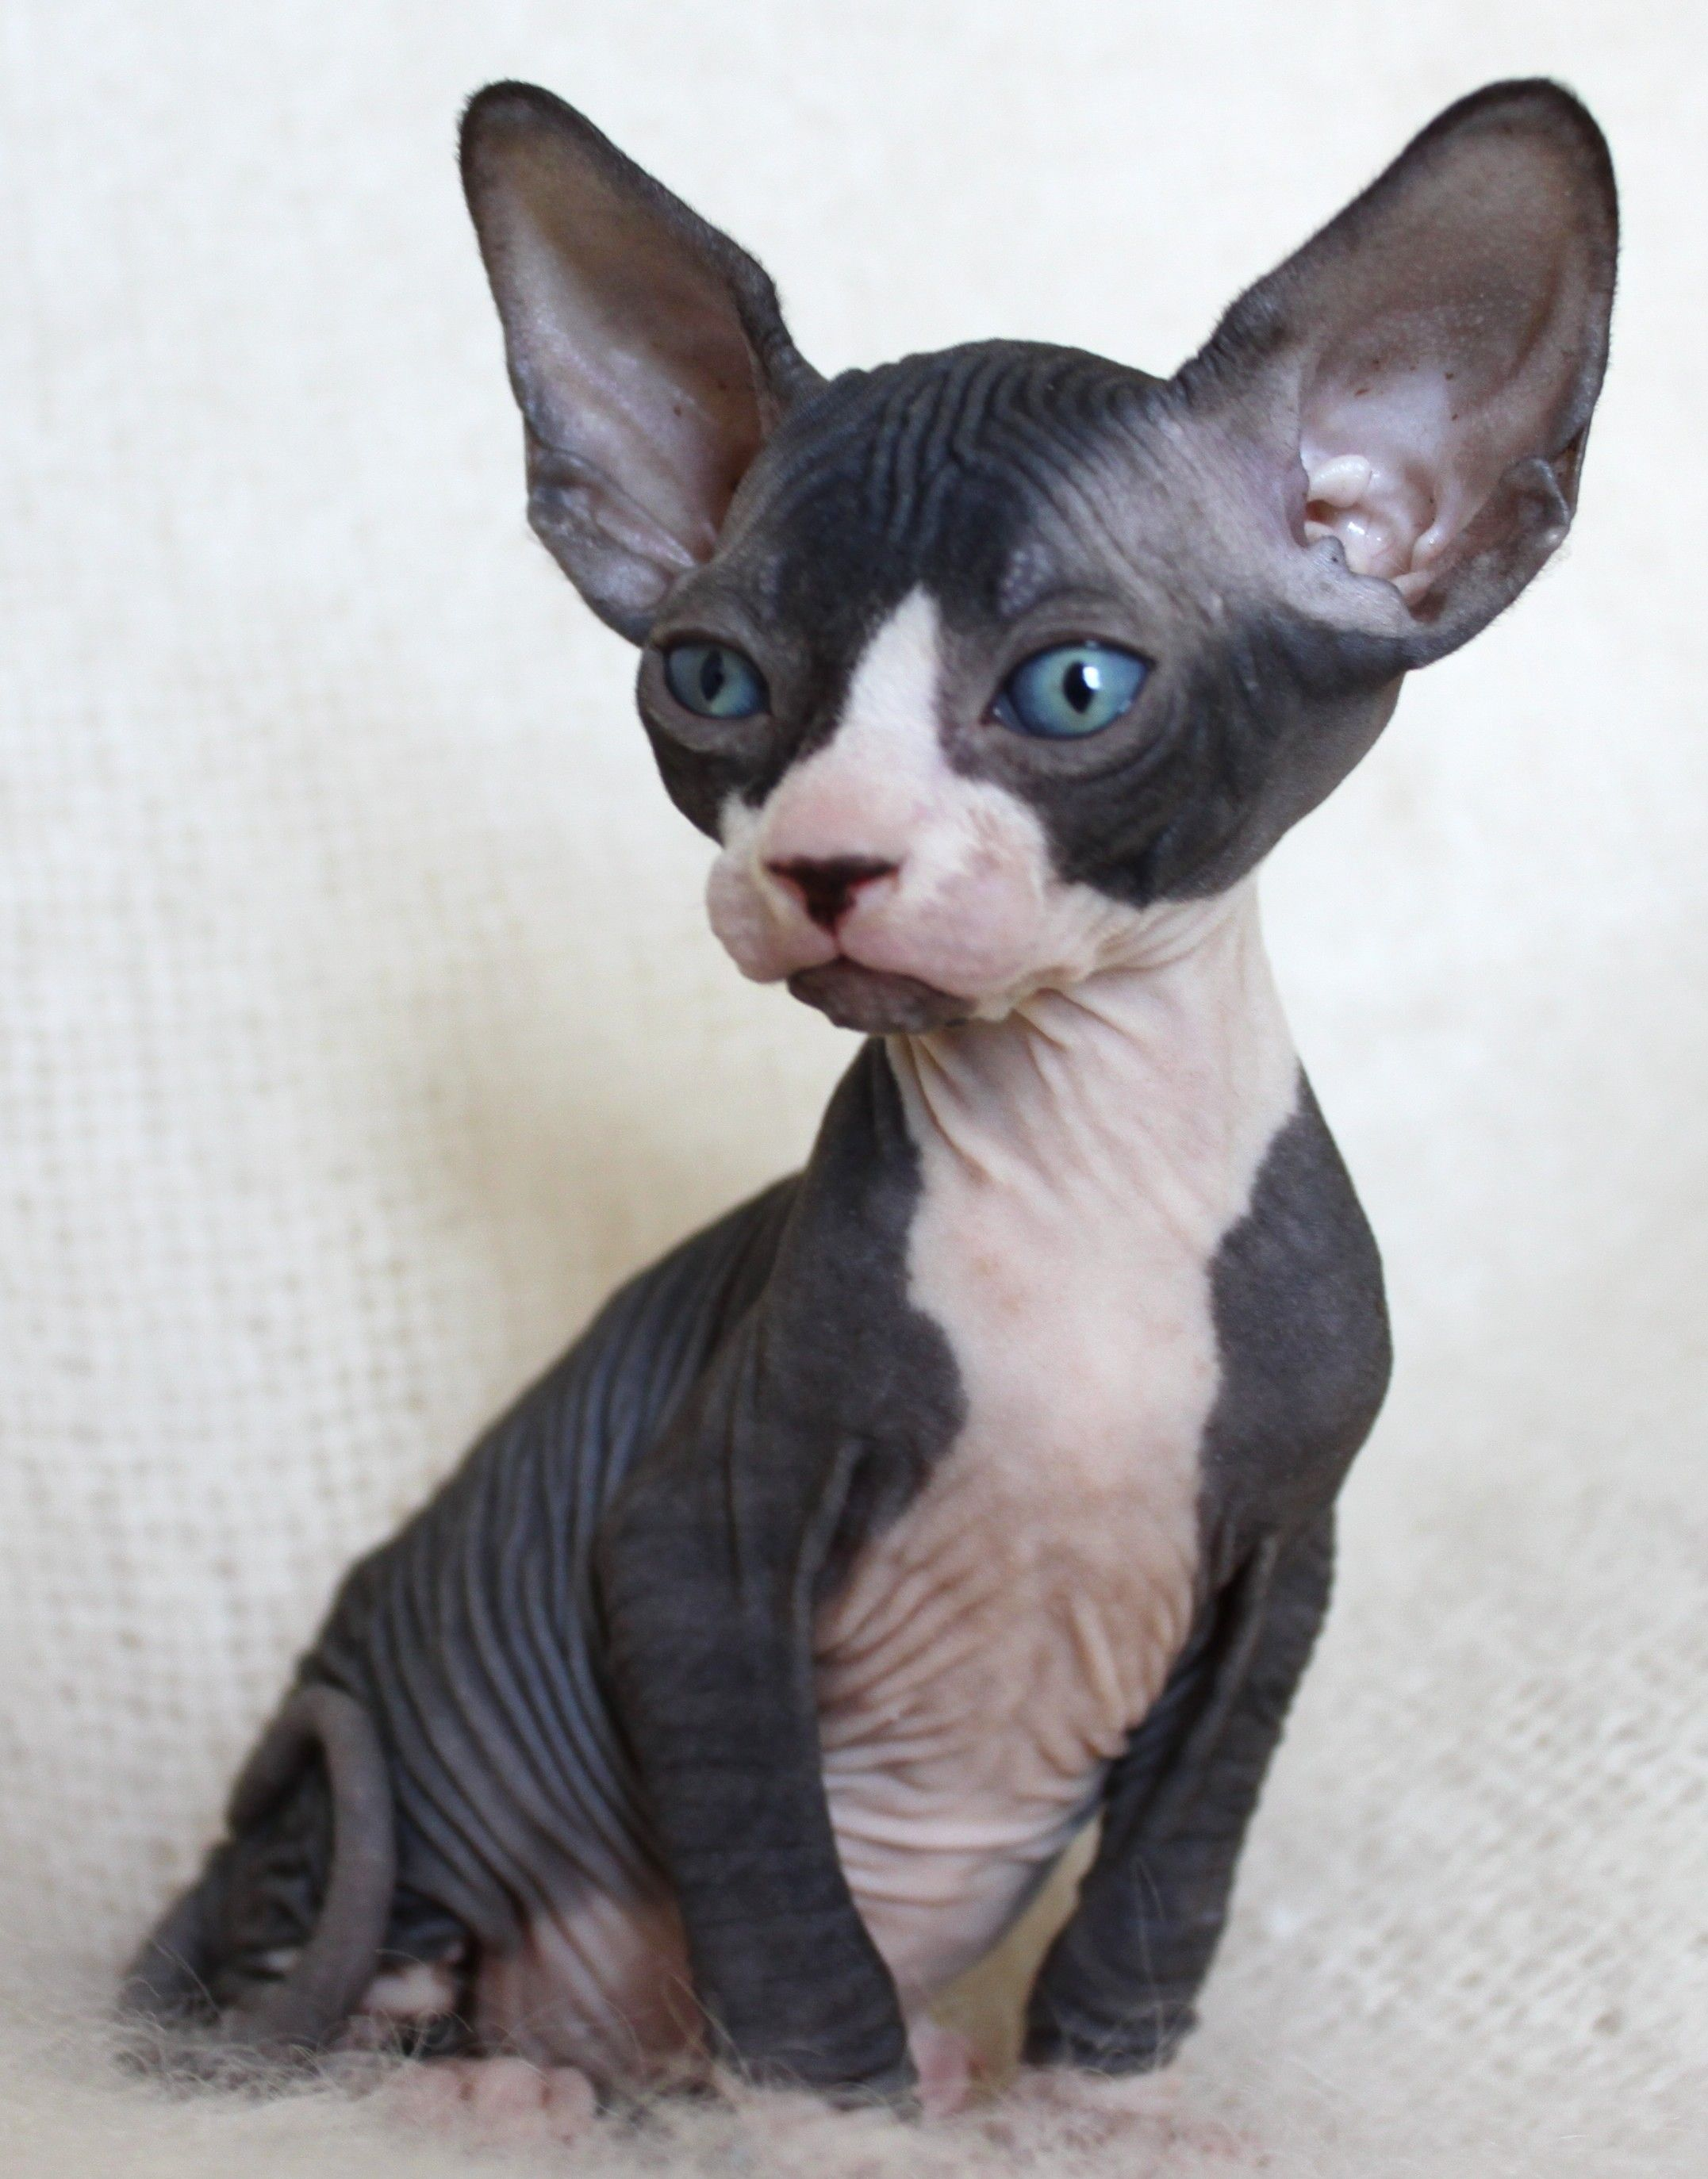 Black Hairless Cats Picture Gallery Imagefiesta Com Sphynxcat Hairless Cat Black Hairless Cat Cat Facts